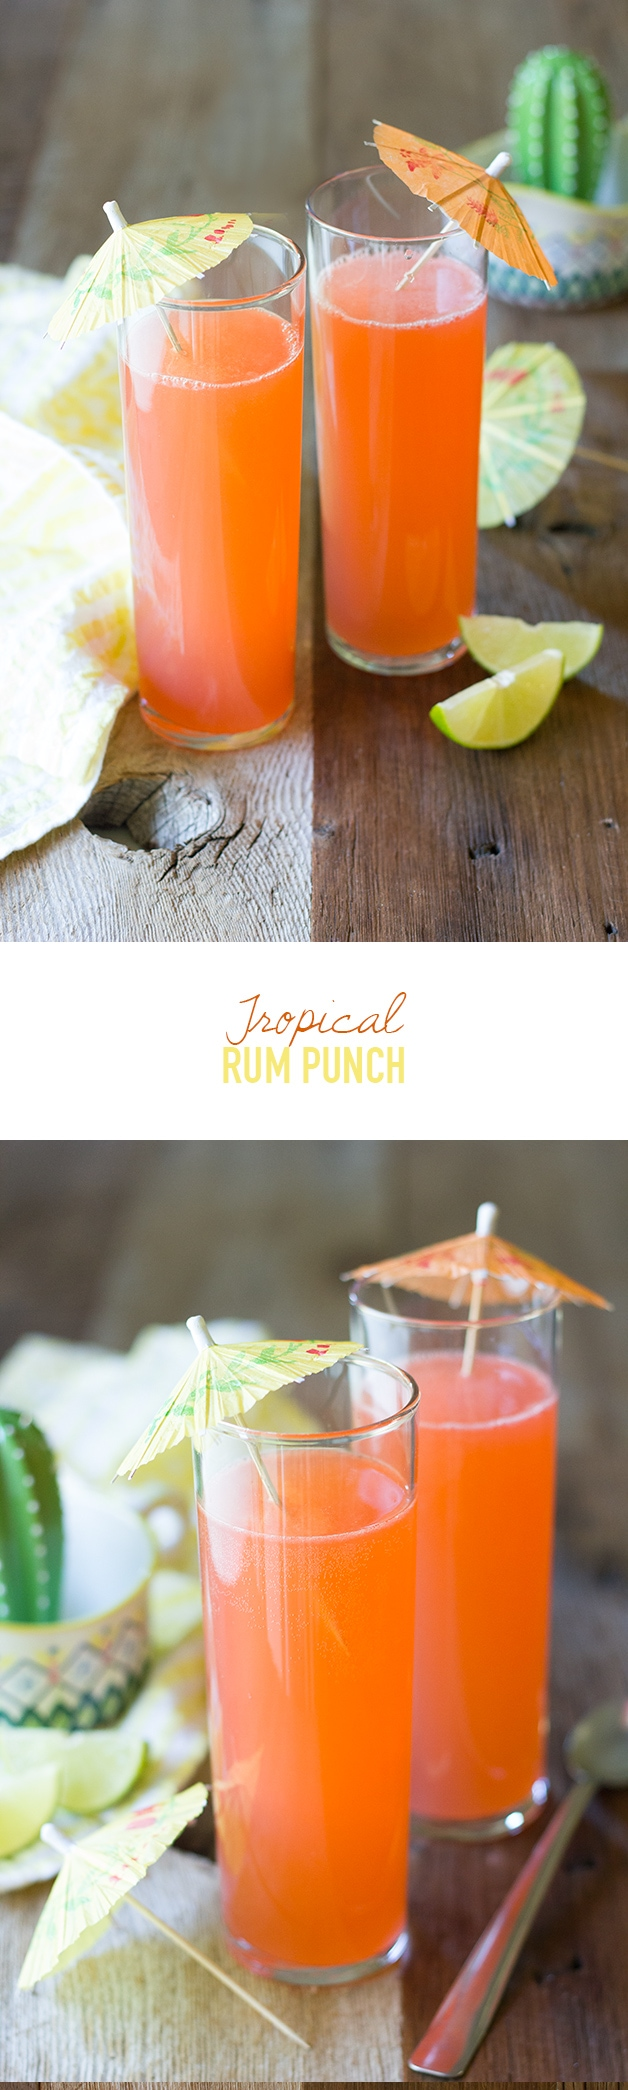 Tropical Rum Punch - An extra-tropical take on a fruity summer sipper. | www.brighteyedbaker.com